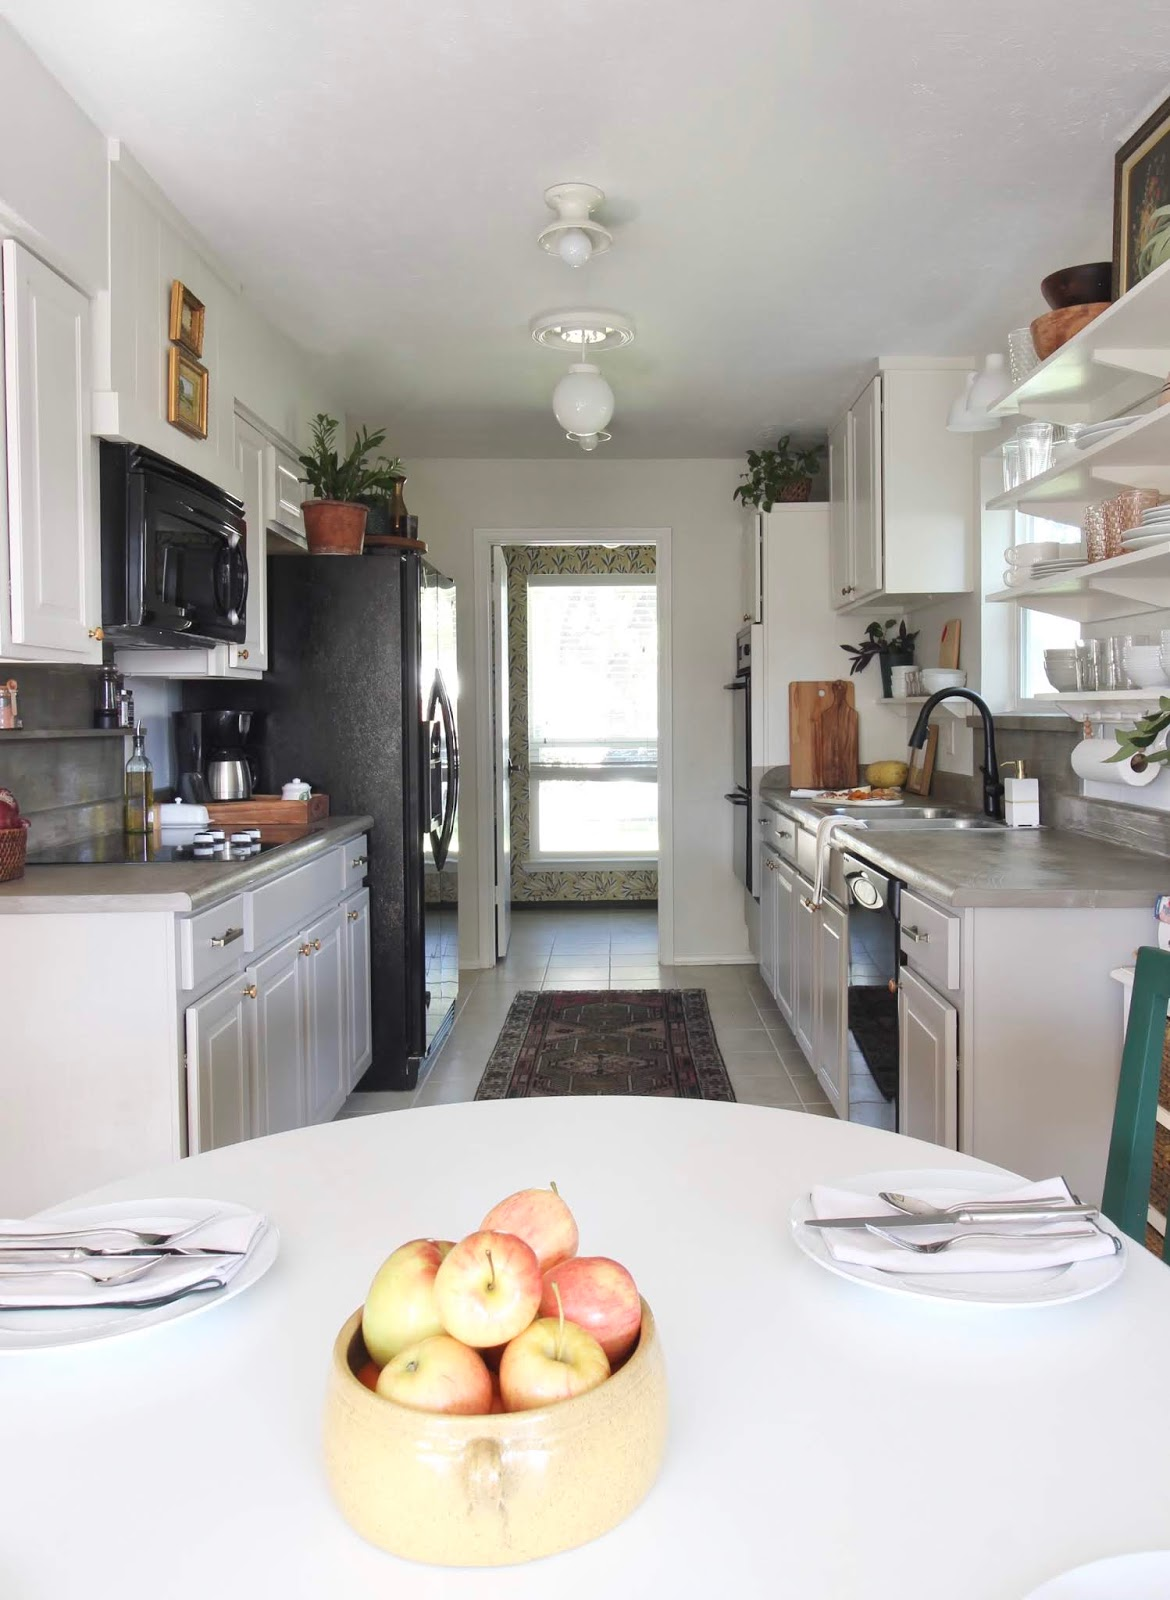 One room challenge budget kitchen makeover concealed hinges | House Homemade